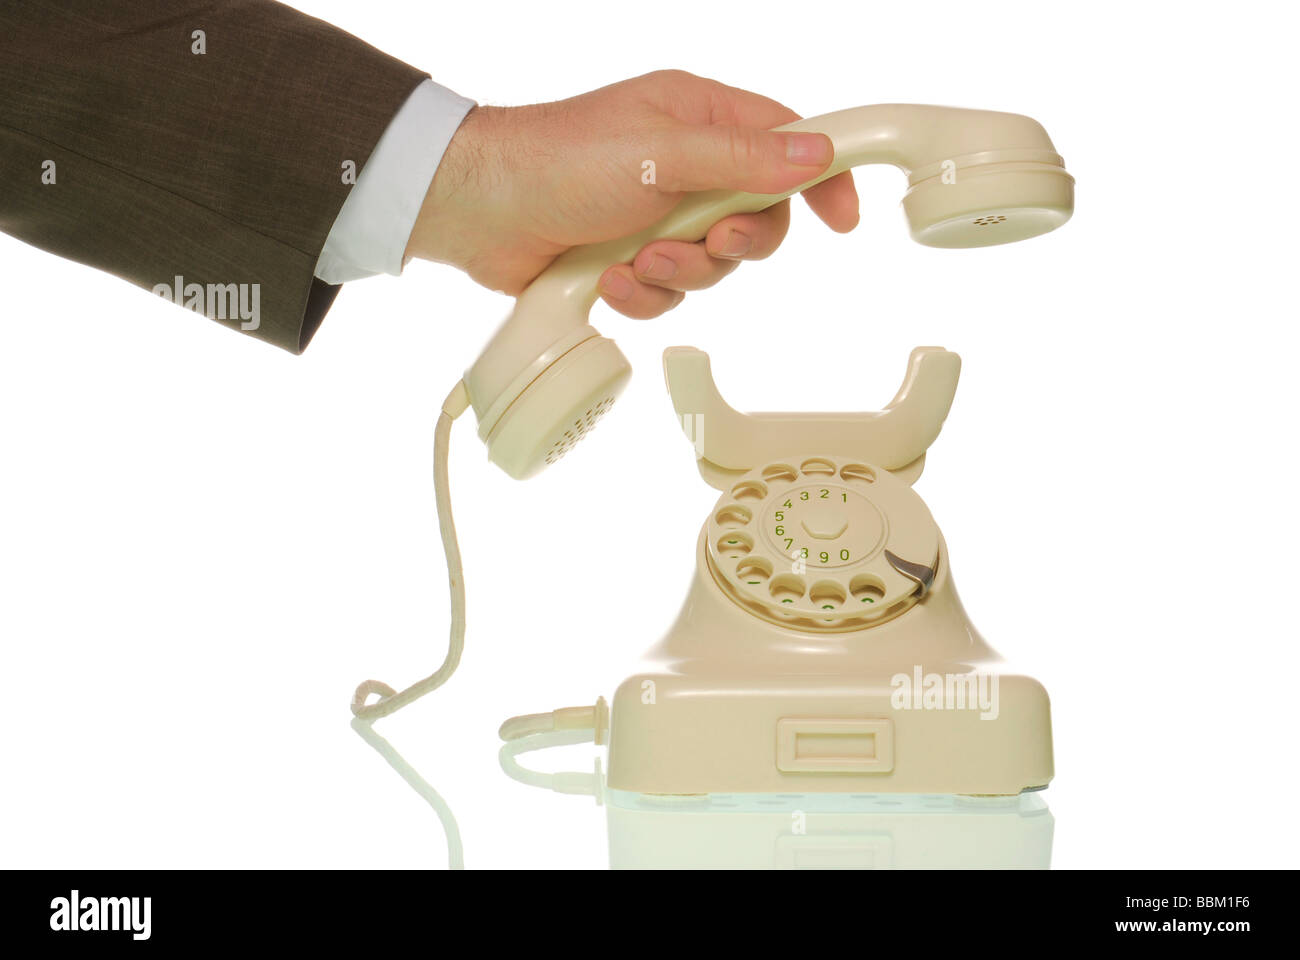 Business man reaching for old-fashioned telephone - Stock Image